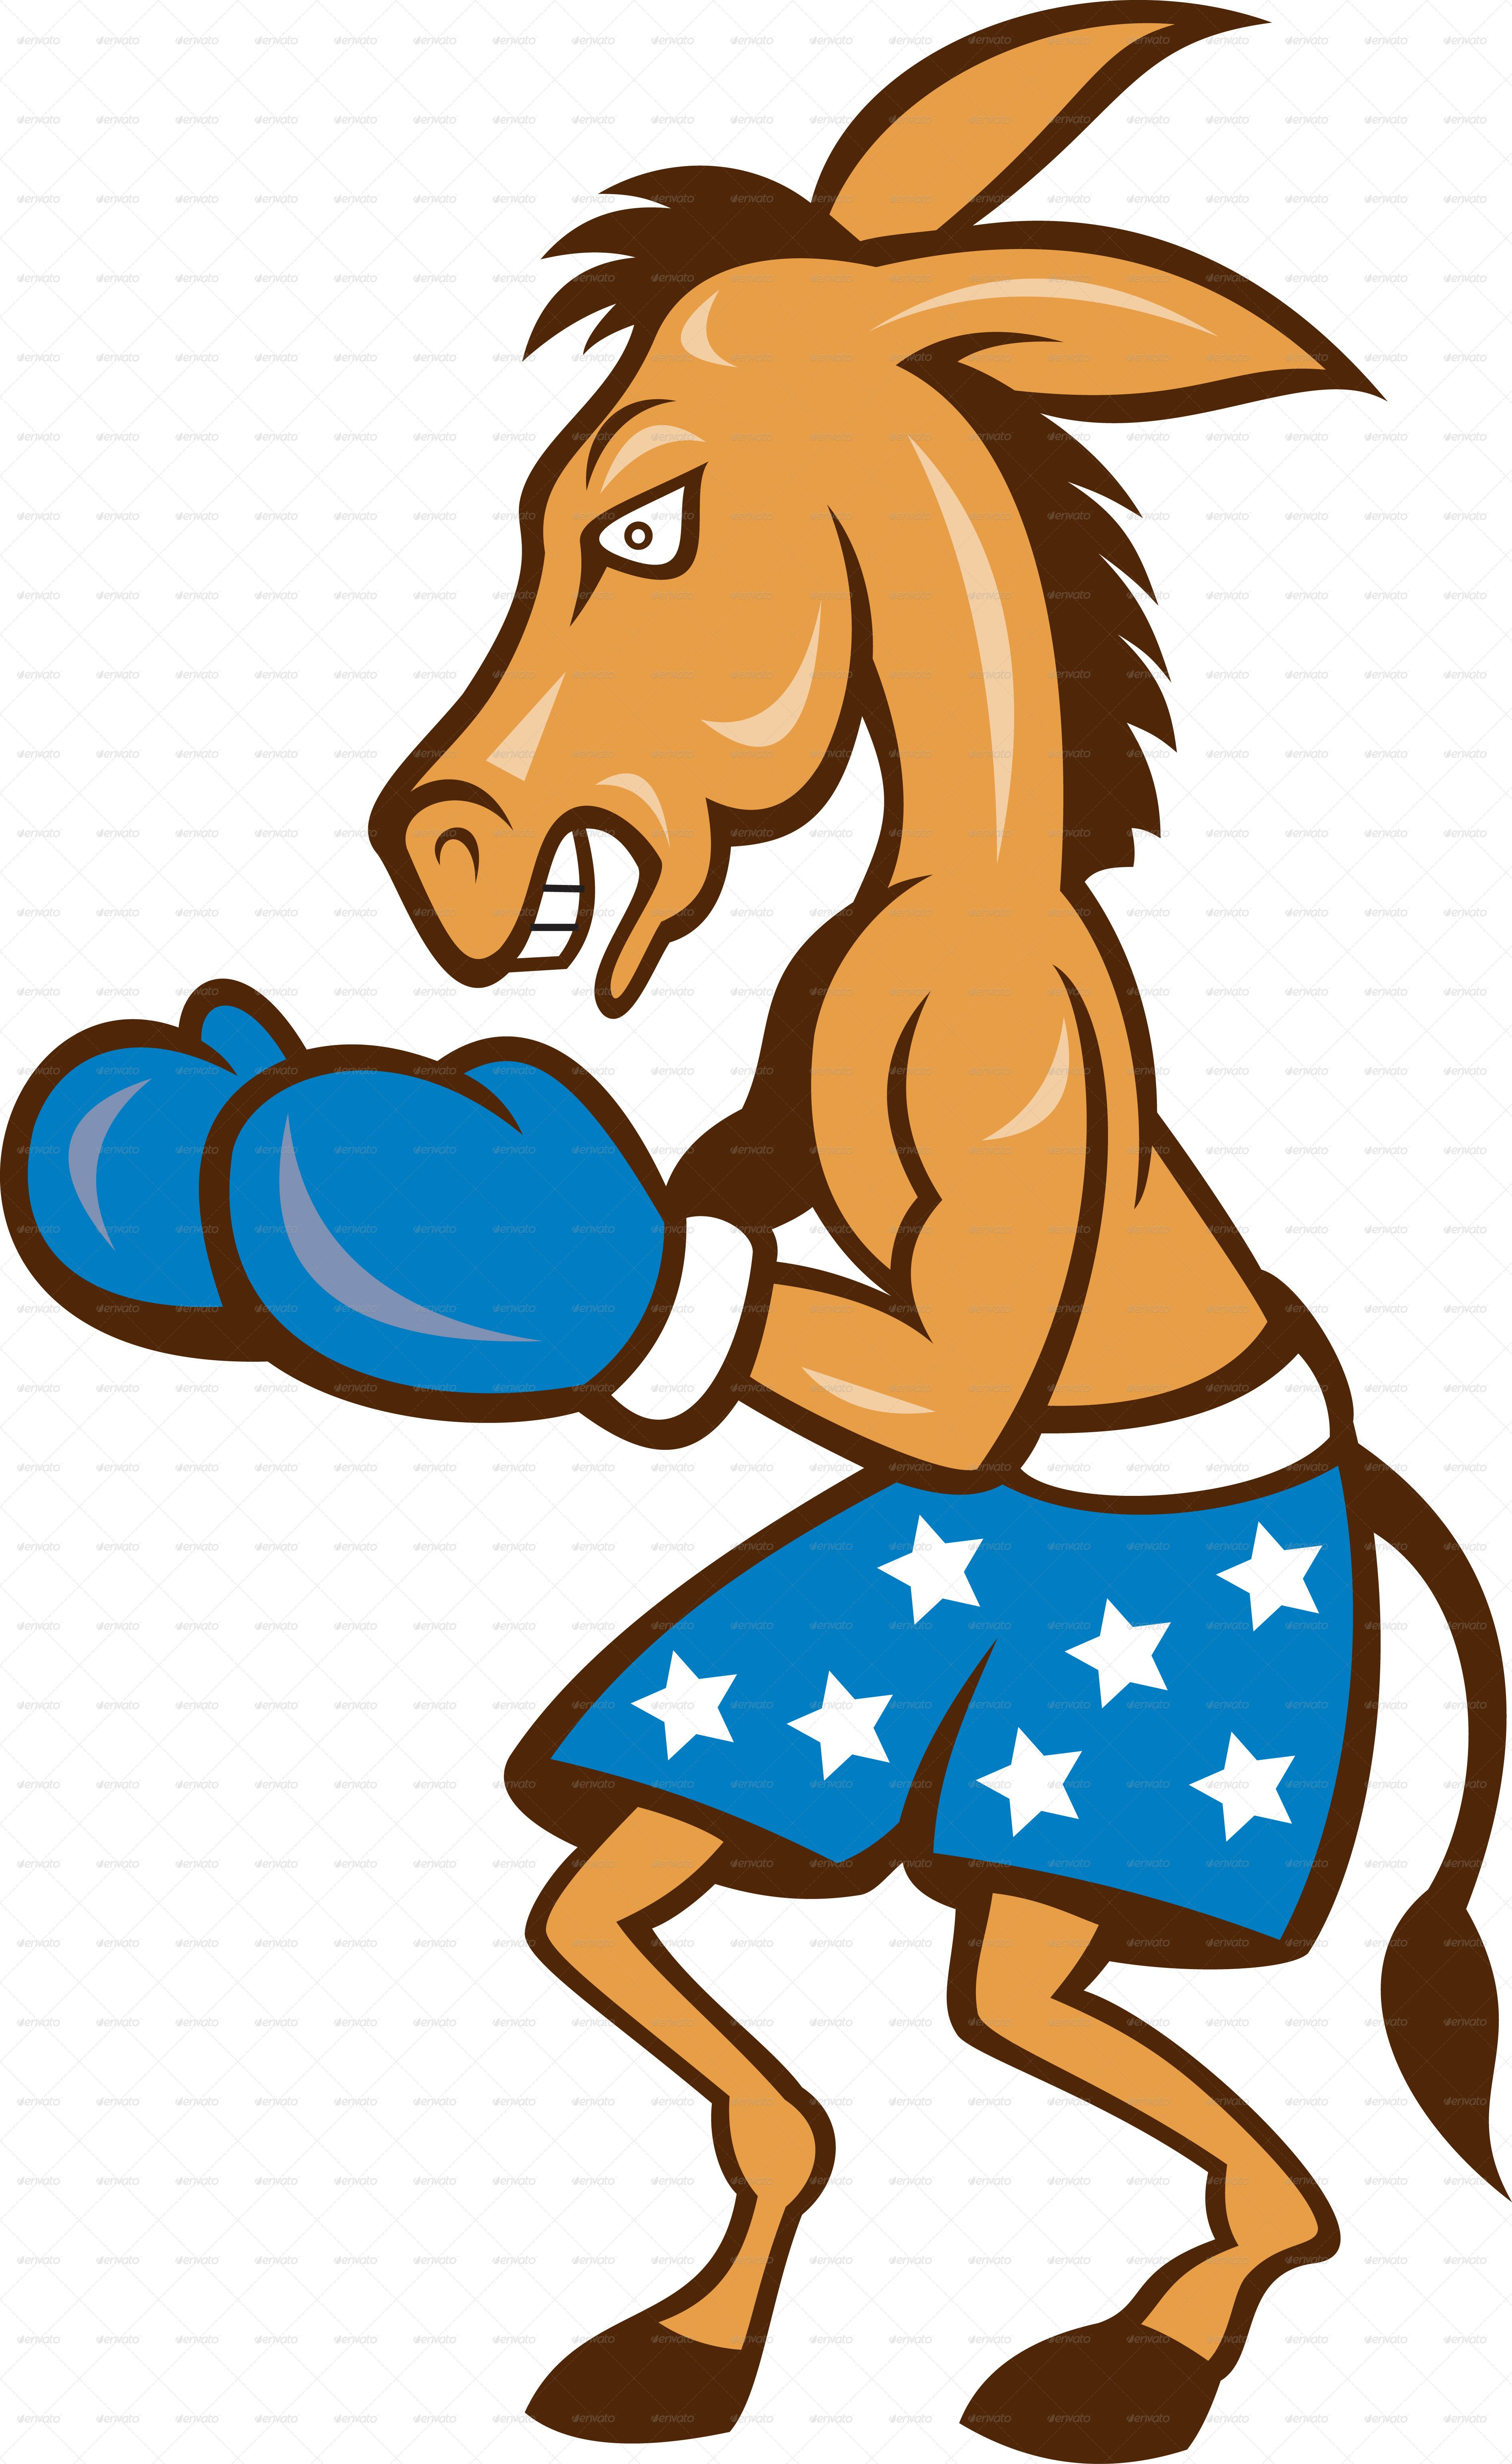 VECTOR DOWNLOAD (.ai, .psd) :: http://jquery-css.de/pinterest-itmid-1002320012i.html ... Donkey Jackass Boxing Stance  ...  animal, artwork, boxer, boxing, cartoon, democrat, donkey, equine, gloves, graphics, horse, illustration, jackass, mascot, shorts, star  ... Vectors Graphics Design Illustration Isolated Vector Templates Textures Stock Business Realistic eCommerce Wordpress Infographics Element Print Webdesign ... DOWNLOAD :: http://jquery-css.de/pinterest-itmid-1002320012i.html